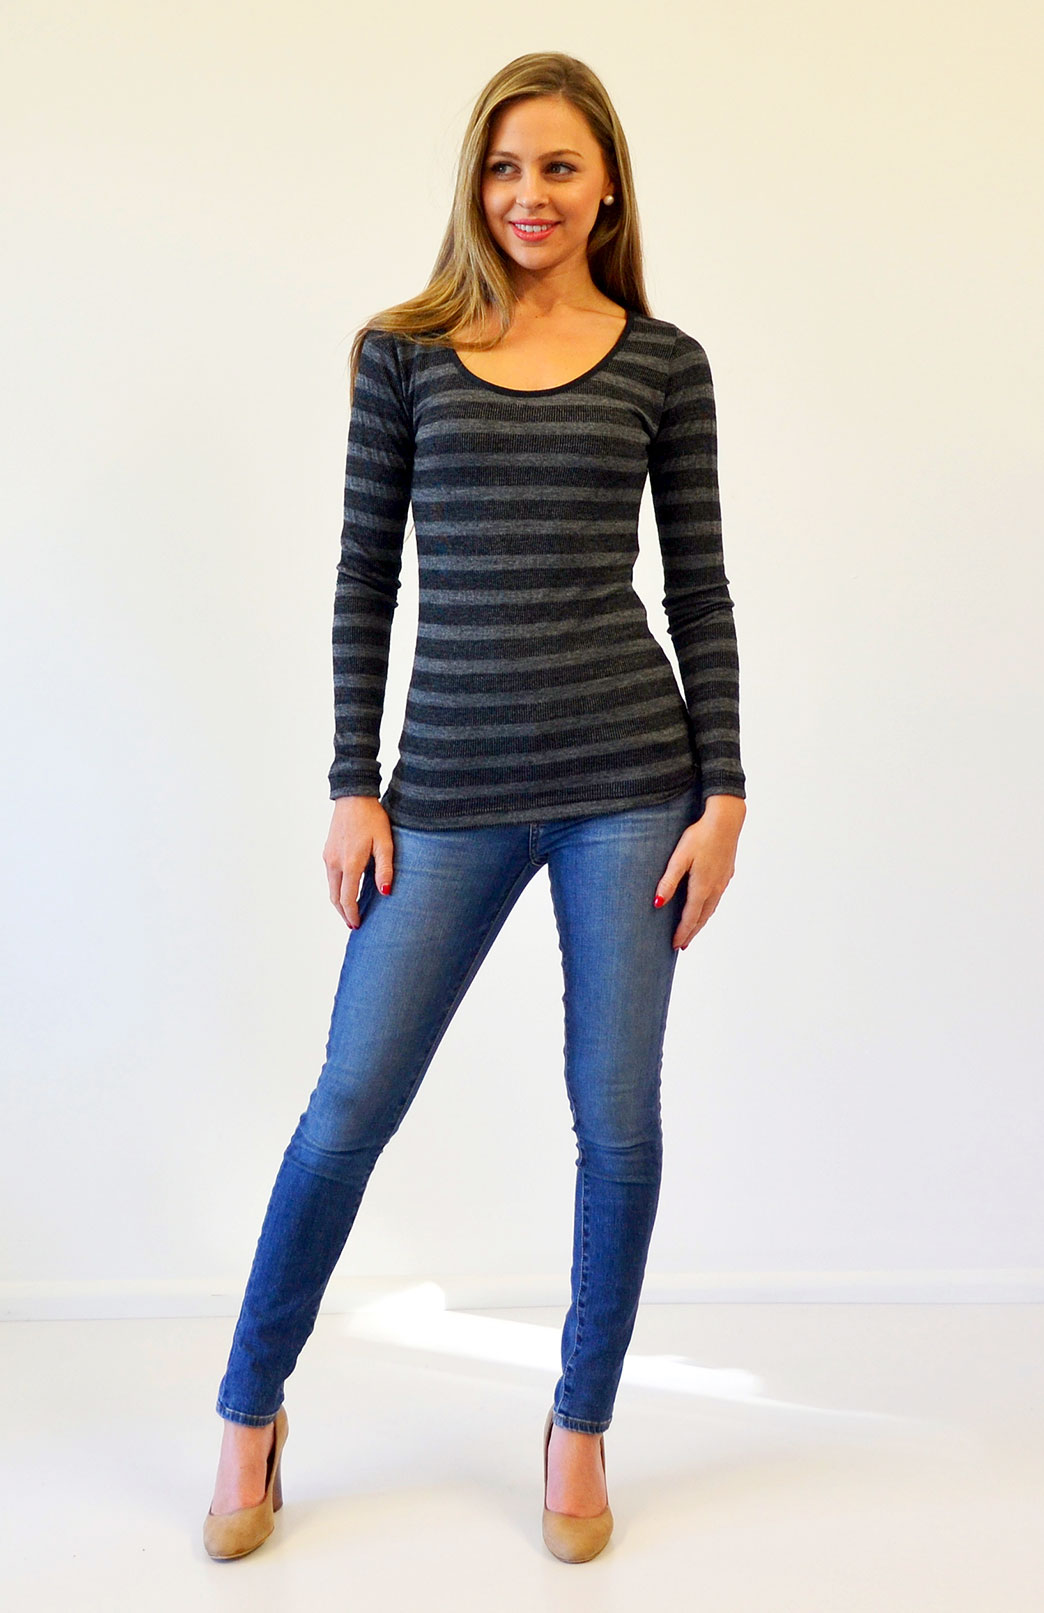 Scoop Neck Top - Patterned - Women's Black and Grey Wide Stripe Merino Wool Blend Long Sleeved Scoop Neck Top - Smitten Merino Tasmania Australia